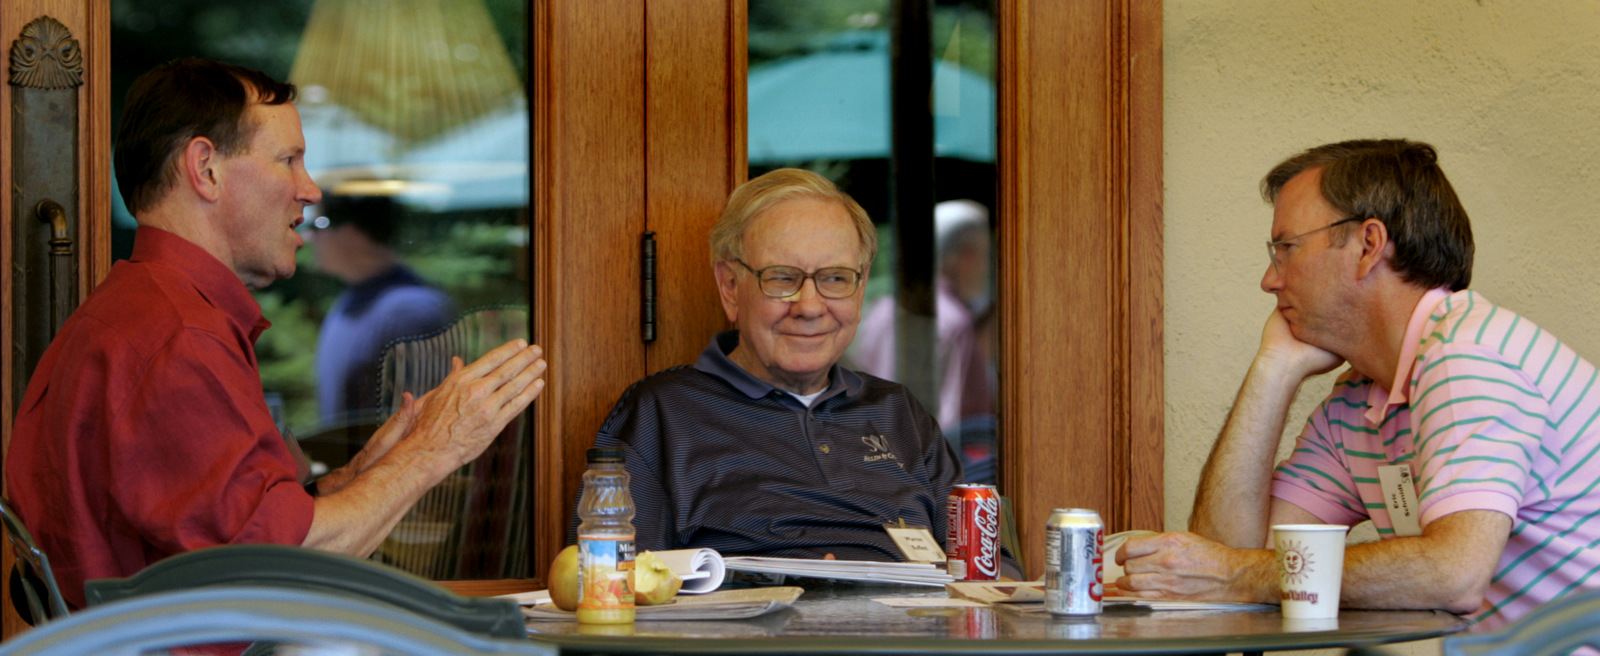 The Washington Post's Don Graham, left, Berkshire Hathaway's Warren Buffett and Google's Eric Schmidt, right, chat during the annual Allen and Co.'s conference, July 7, 2005, in Sun Valley, Idaho. (AP/Douglas C. Pizac)